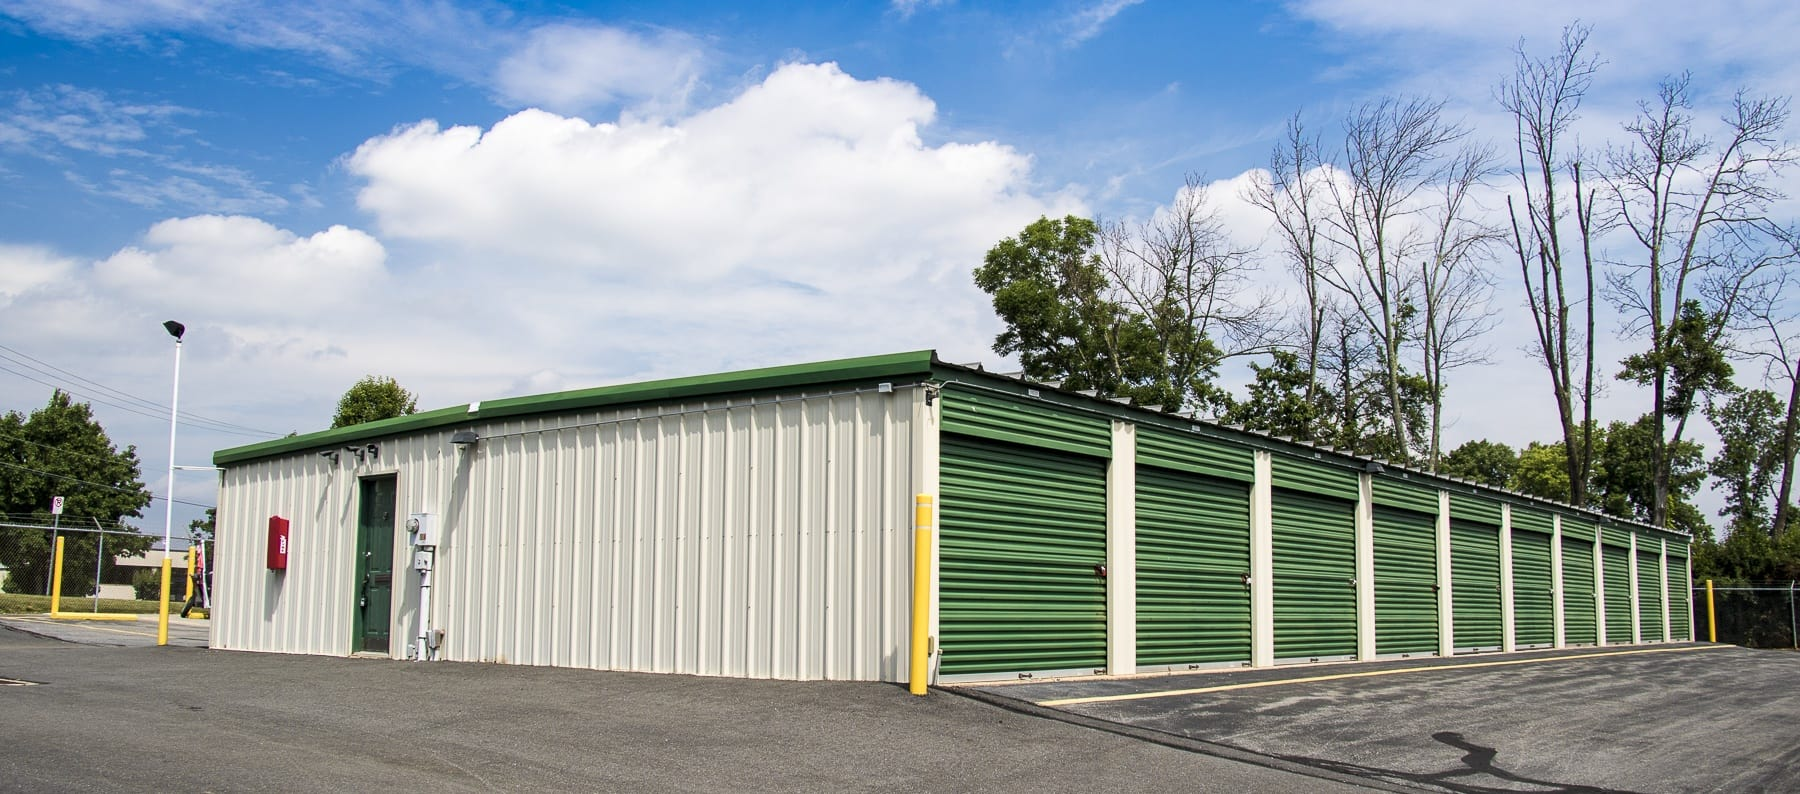 Vehicle storage in Sinking Spring Storage World